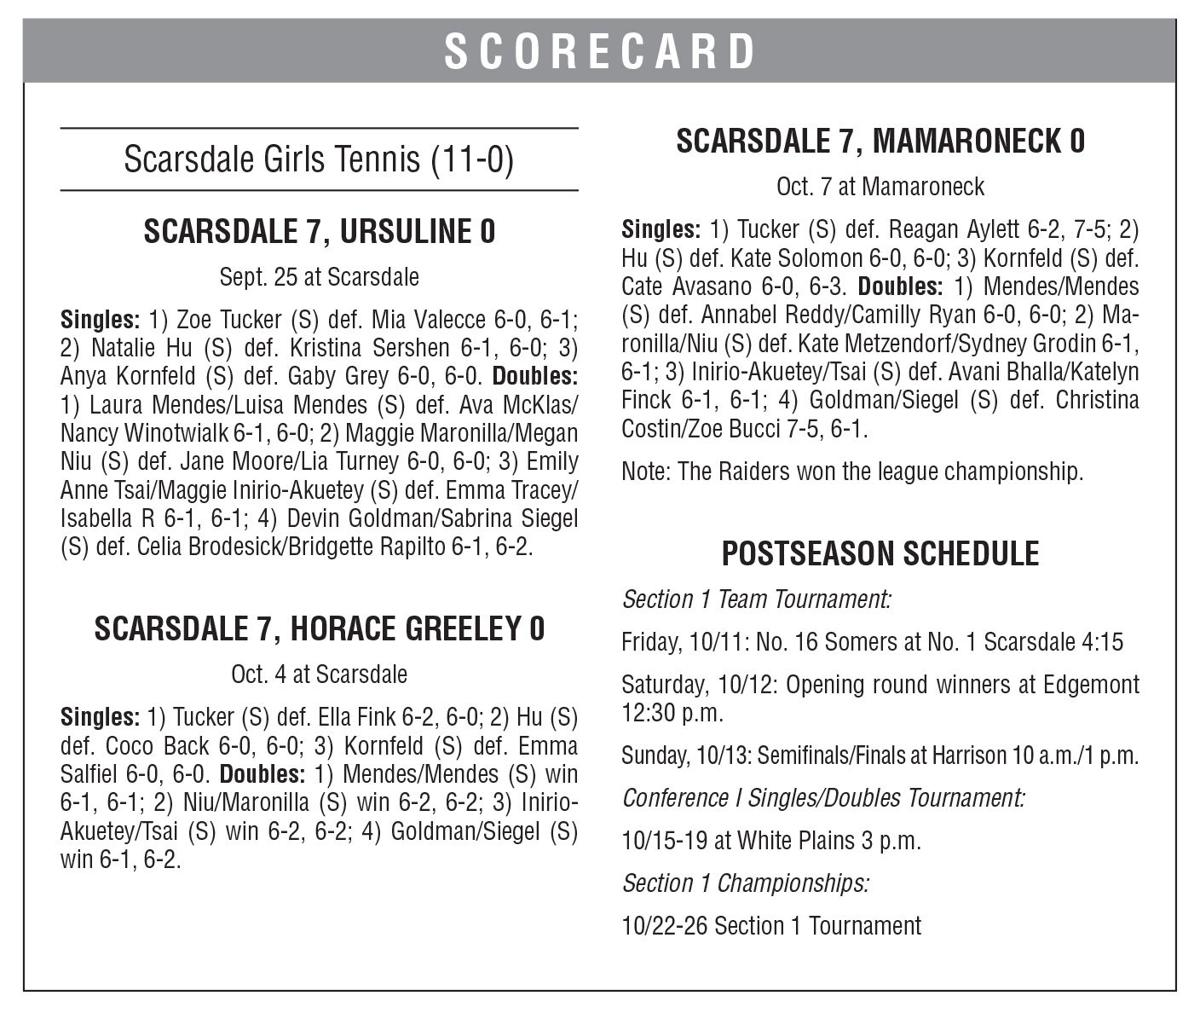 Scarsdale tennis boxscore 10/11 issue